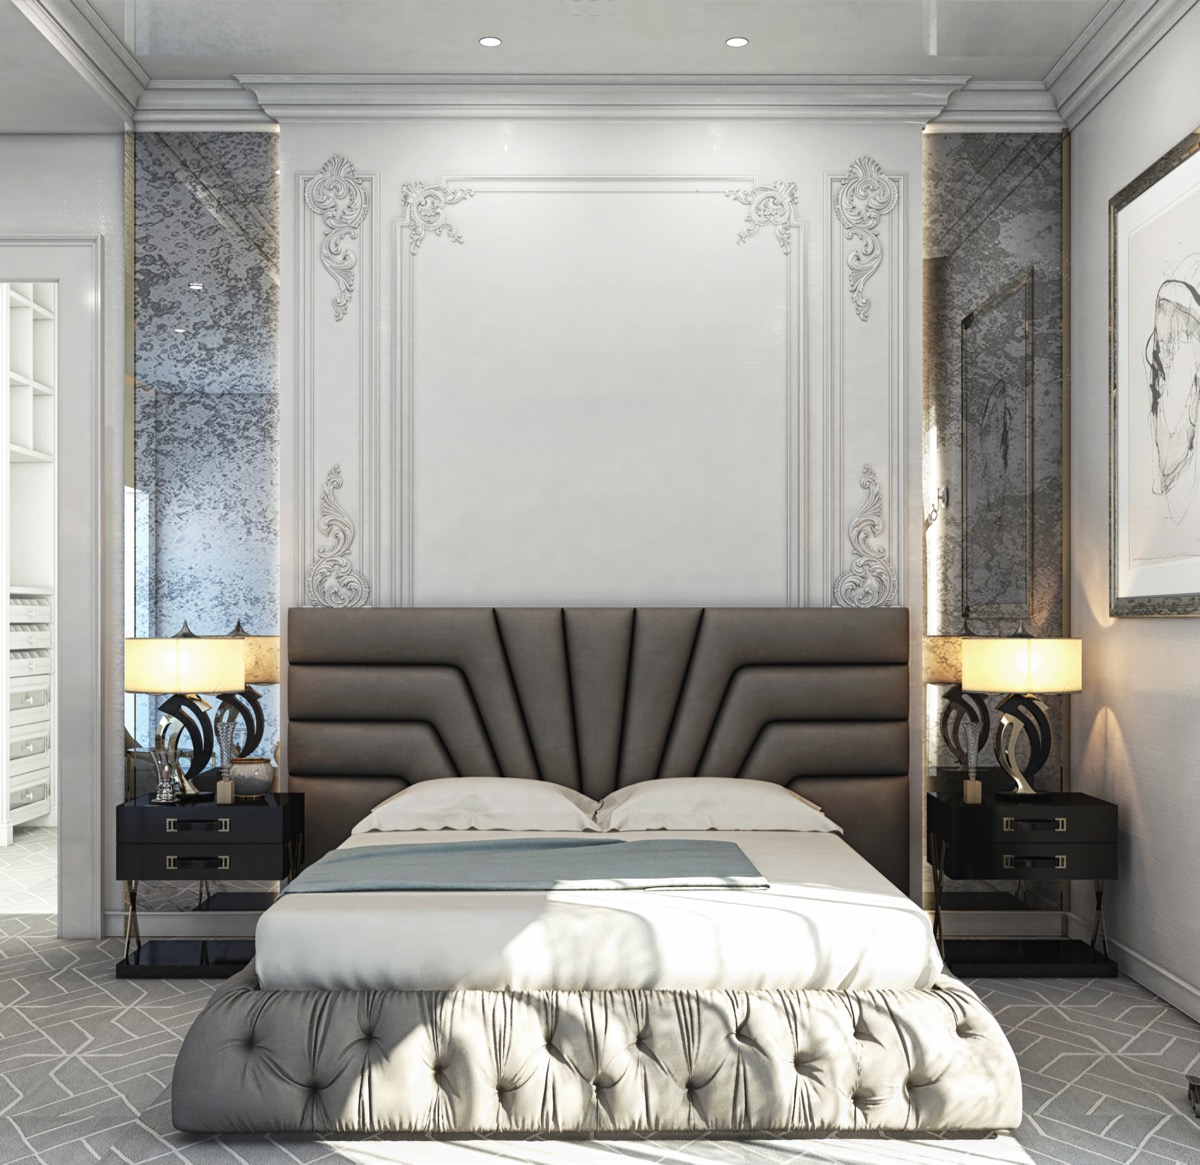 4 Luxury Bedrooms With Images, Tips & Accessories To Help You